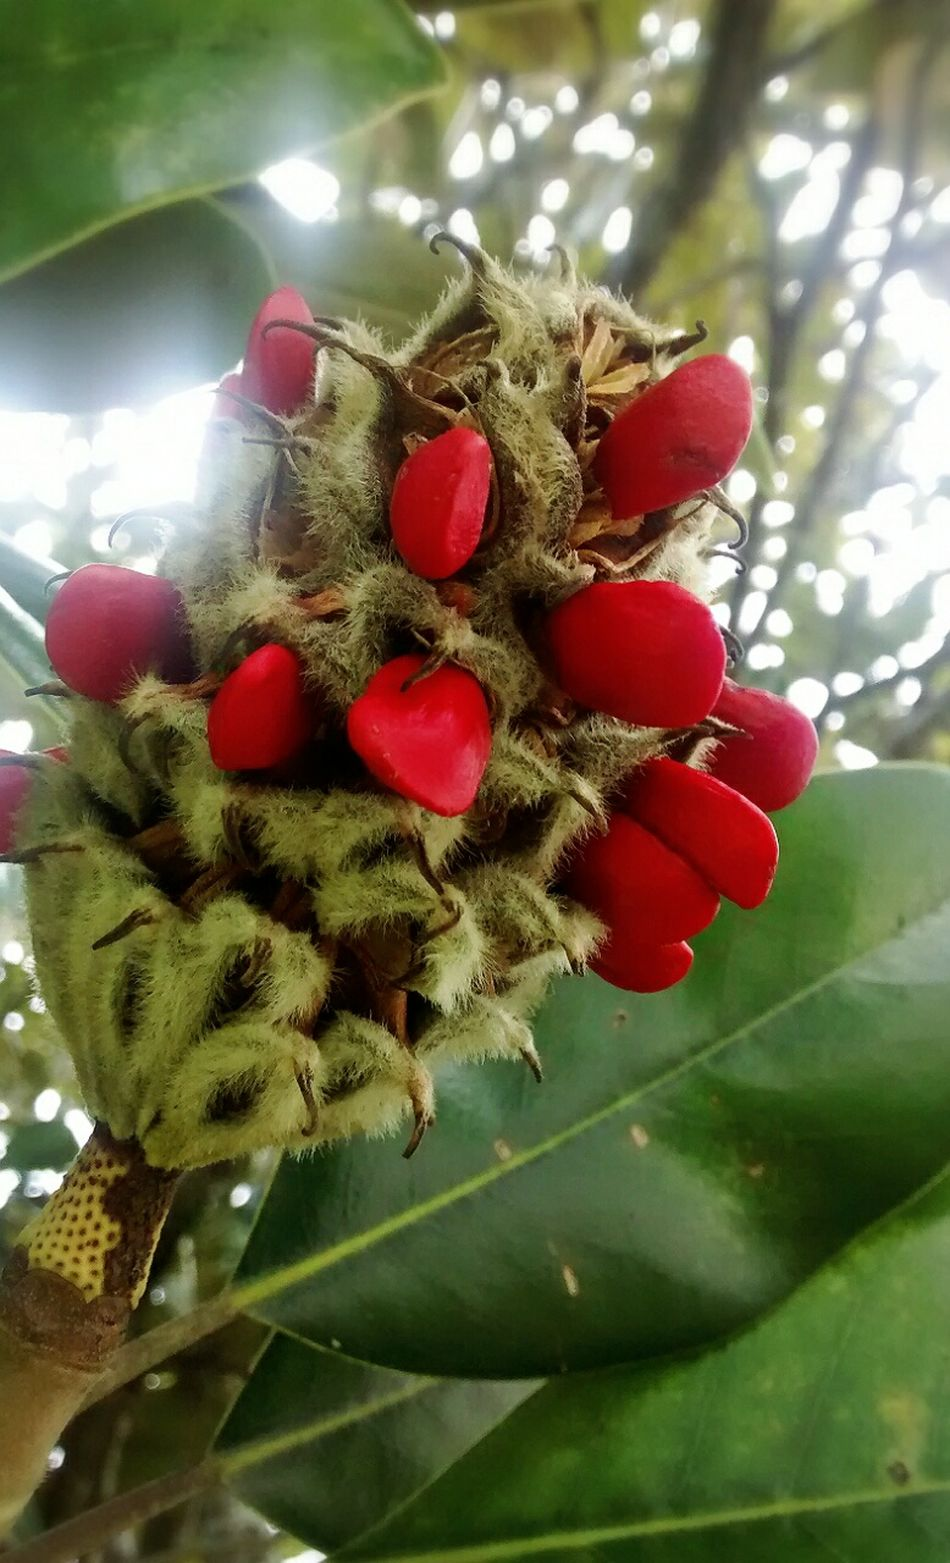 Seeds Trees Nature Red Magnolia Campus Daily Ride Biking Quick Pic End Of Summer